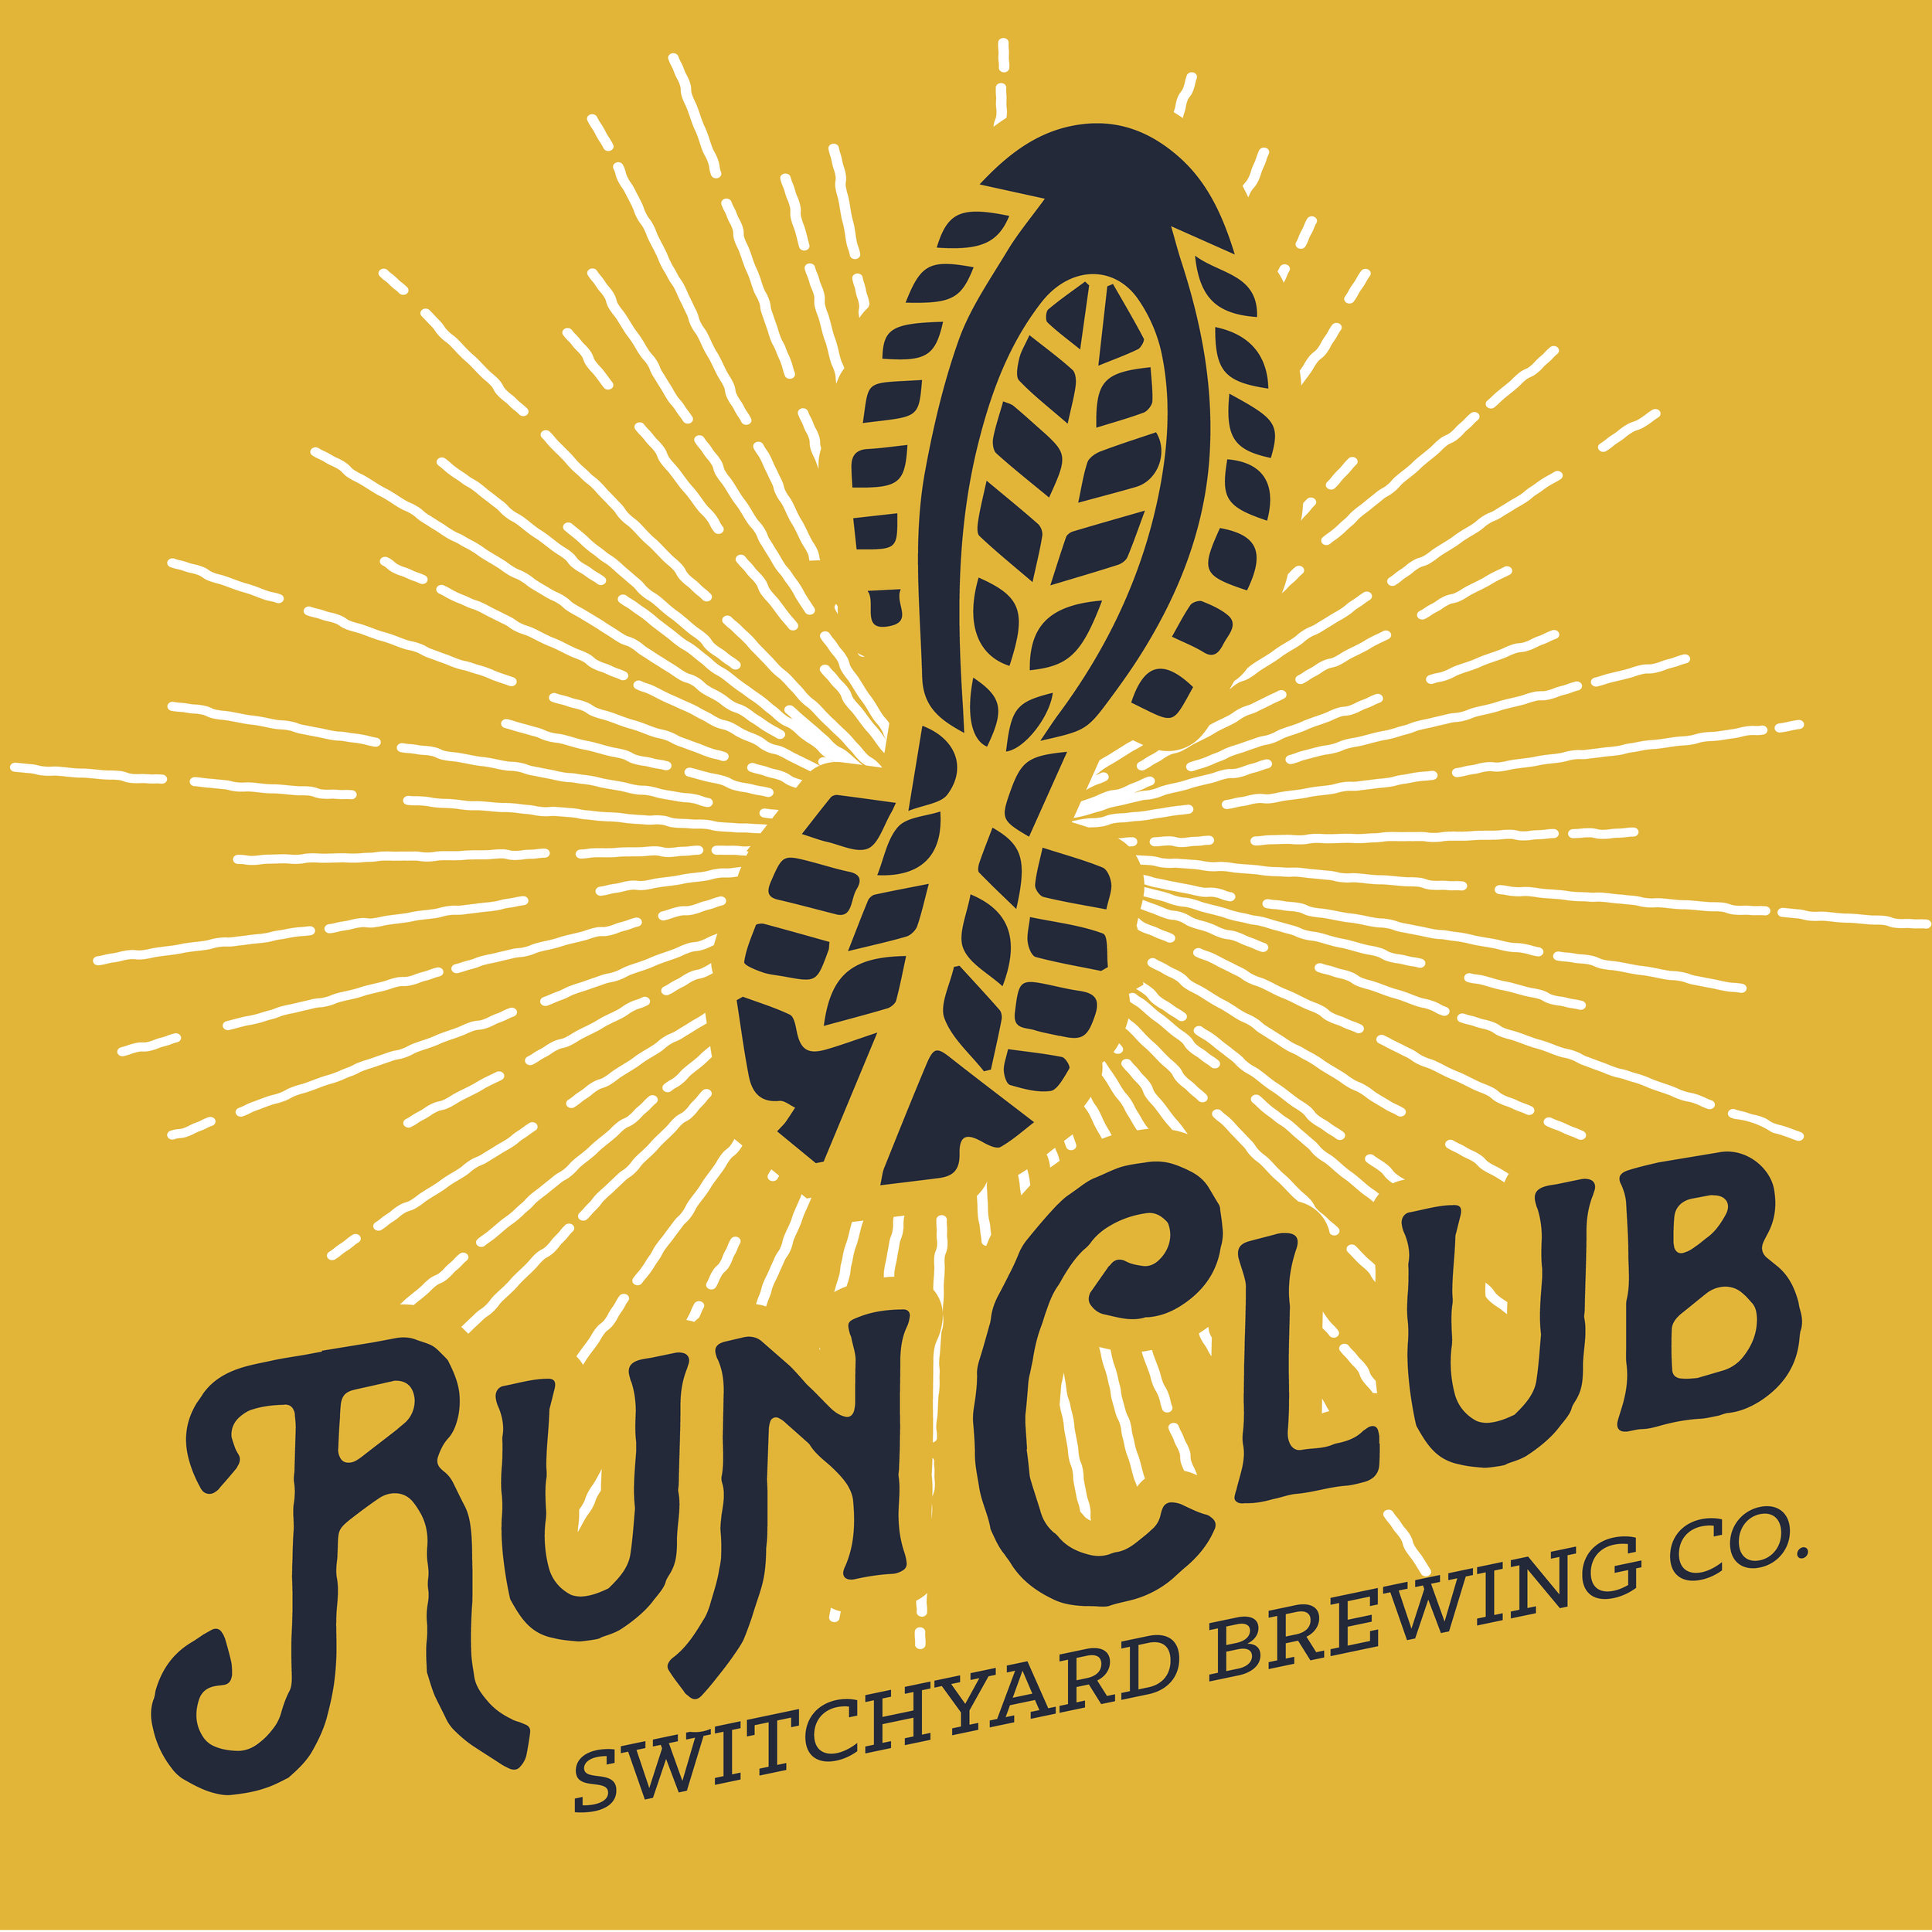 """Our Run Club meets every Monday at 6:00 PM at our downtown taproom. The Run Club is free to join!  Choose a 1.5, 3 or 5-mile family-friendly course to run or walk and earn points towards run club milestone rewards!  We formed our run club as part of our brewery's dedication to our community. Our sixth Guiding Principle of how we run Switchyard states, """"Be an active part of our community."""" We believe that business can, and should be a catalyst for positive change within our community. We believe that a business has an obligation to give back to the community of which it is a part. Our run club is an extension of exactly that.  Our routes can be found on our  Run Club Facebook page, on our RunGo Group or you can pick up a printout of our turn by turn directions for simple navigation at check-in.  As always, be courteous to our neighbors while running by making sure to look both ways before darting into traffic, running off to the side and letting cars pass, and be sure to give our neighbors a wave as you run by!👋🏼  We all run the first mile together.  Be sure to arrive at the brewery a little early each run to sign in. We will track your runs for you, and for each run milestone you hit (25, 50, 75, 100) you'll receive a cool gift!  A very special thank you to the  Bloomington Area Runners Association for their enthusiasm and for testing & facilitating the routes!"""